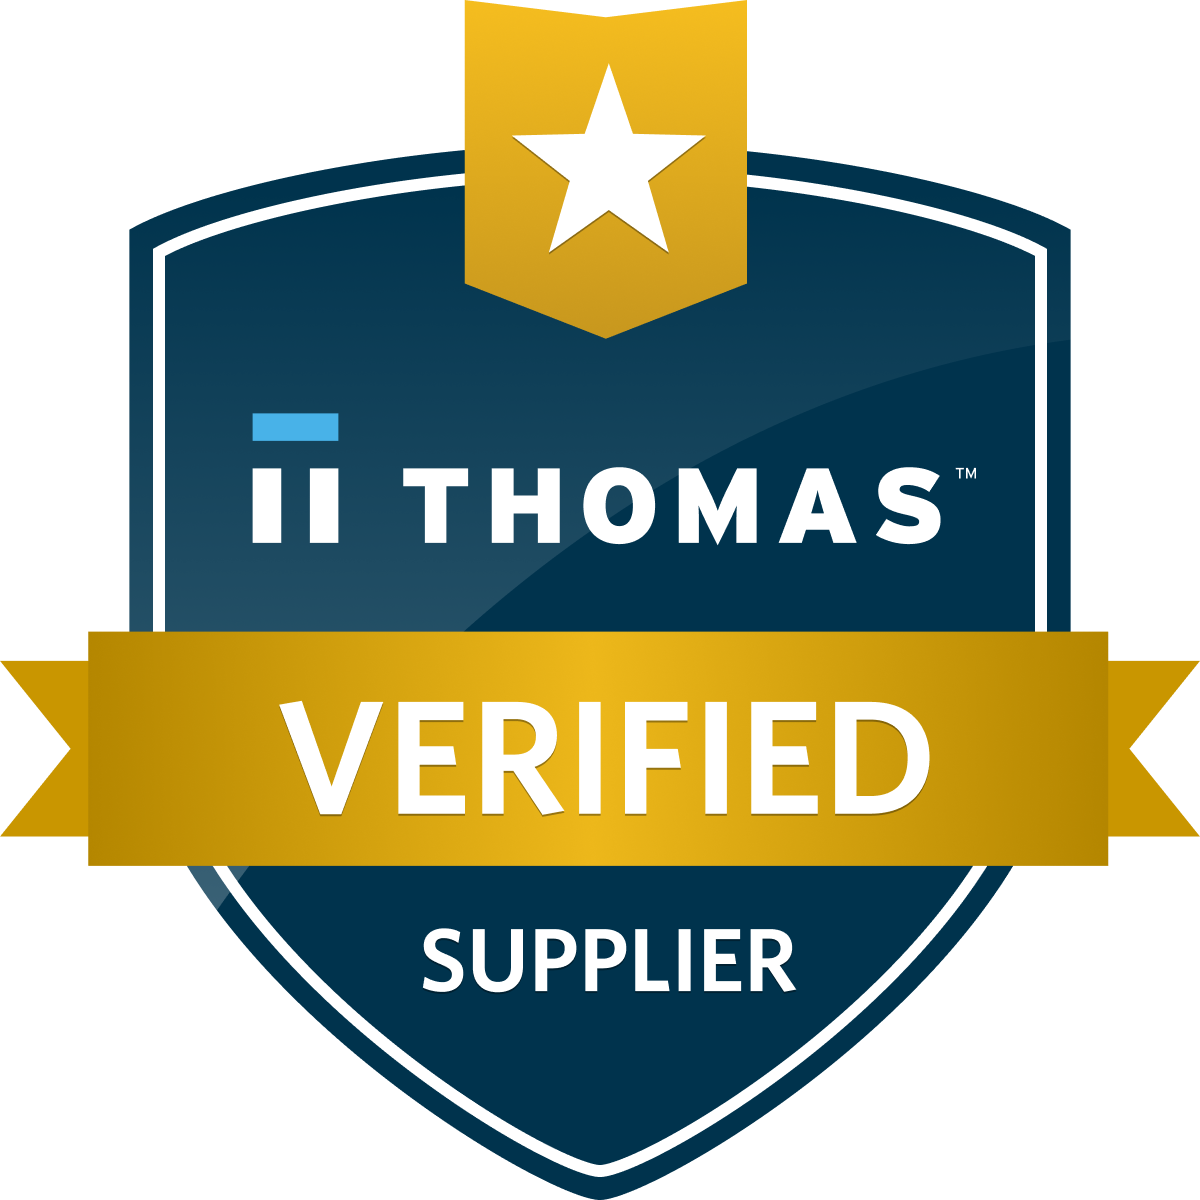 thomas-verified-supplier-shield